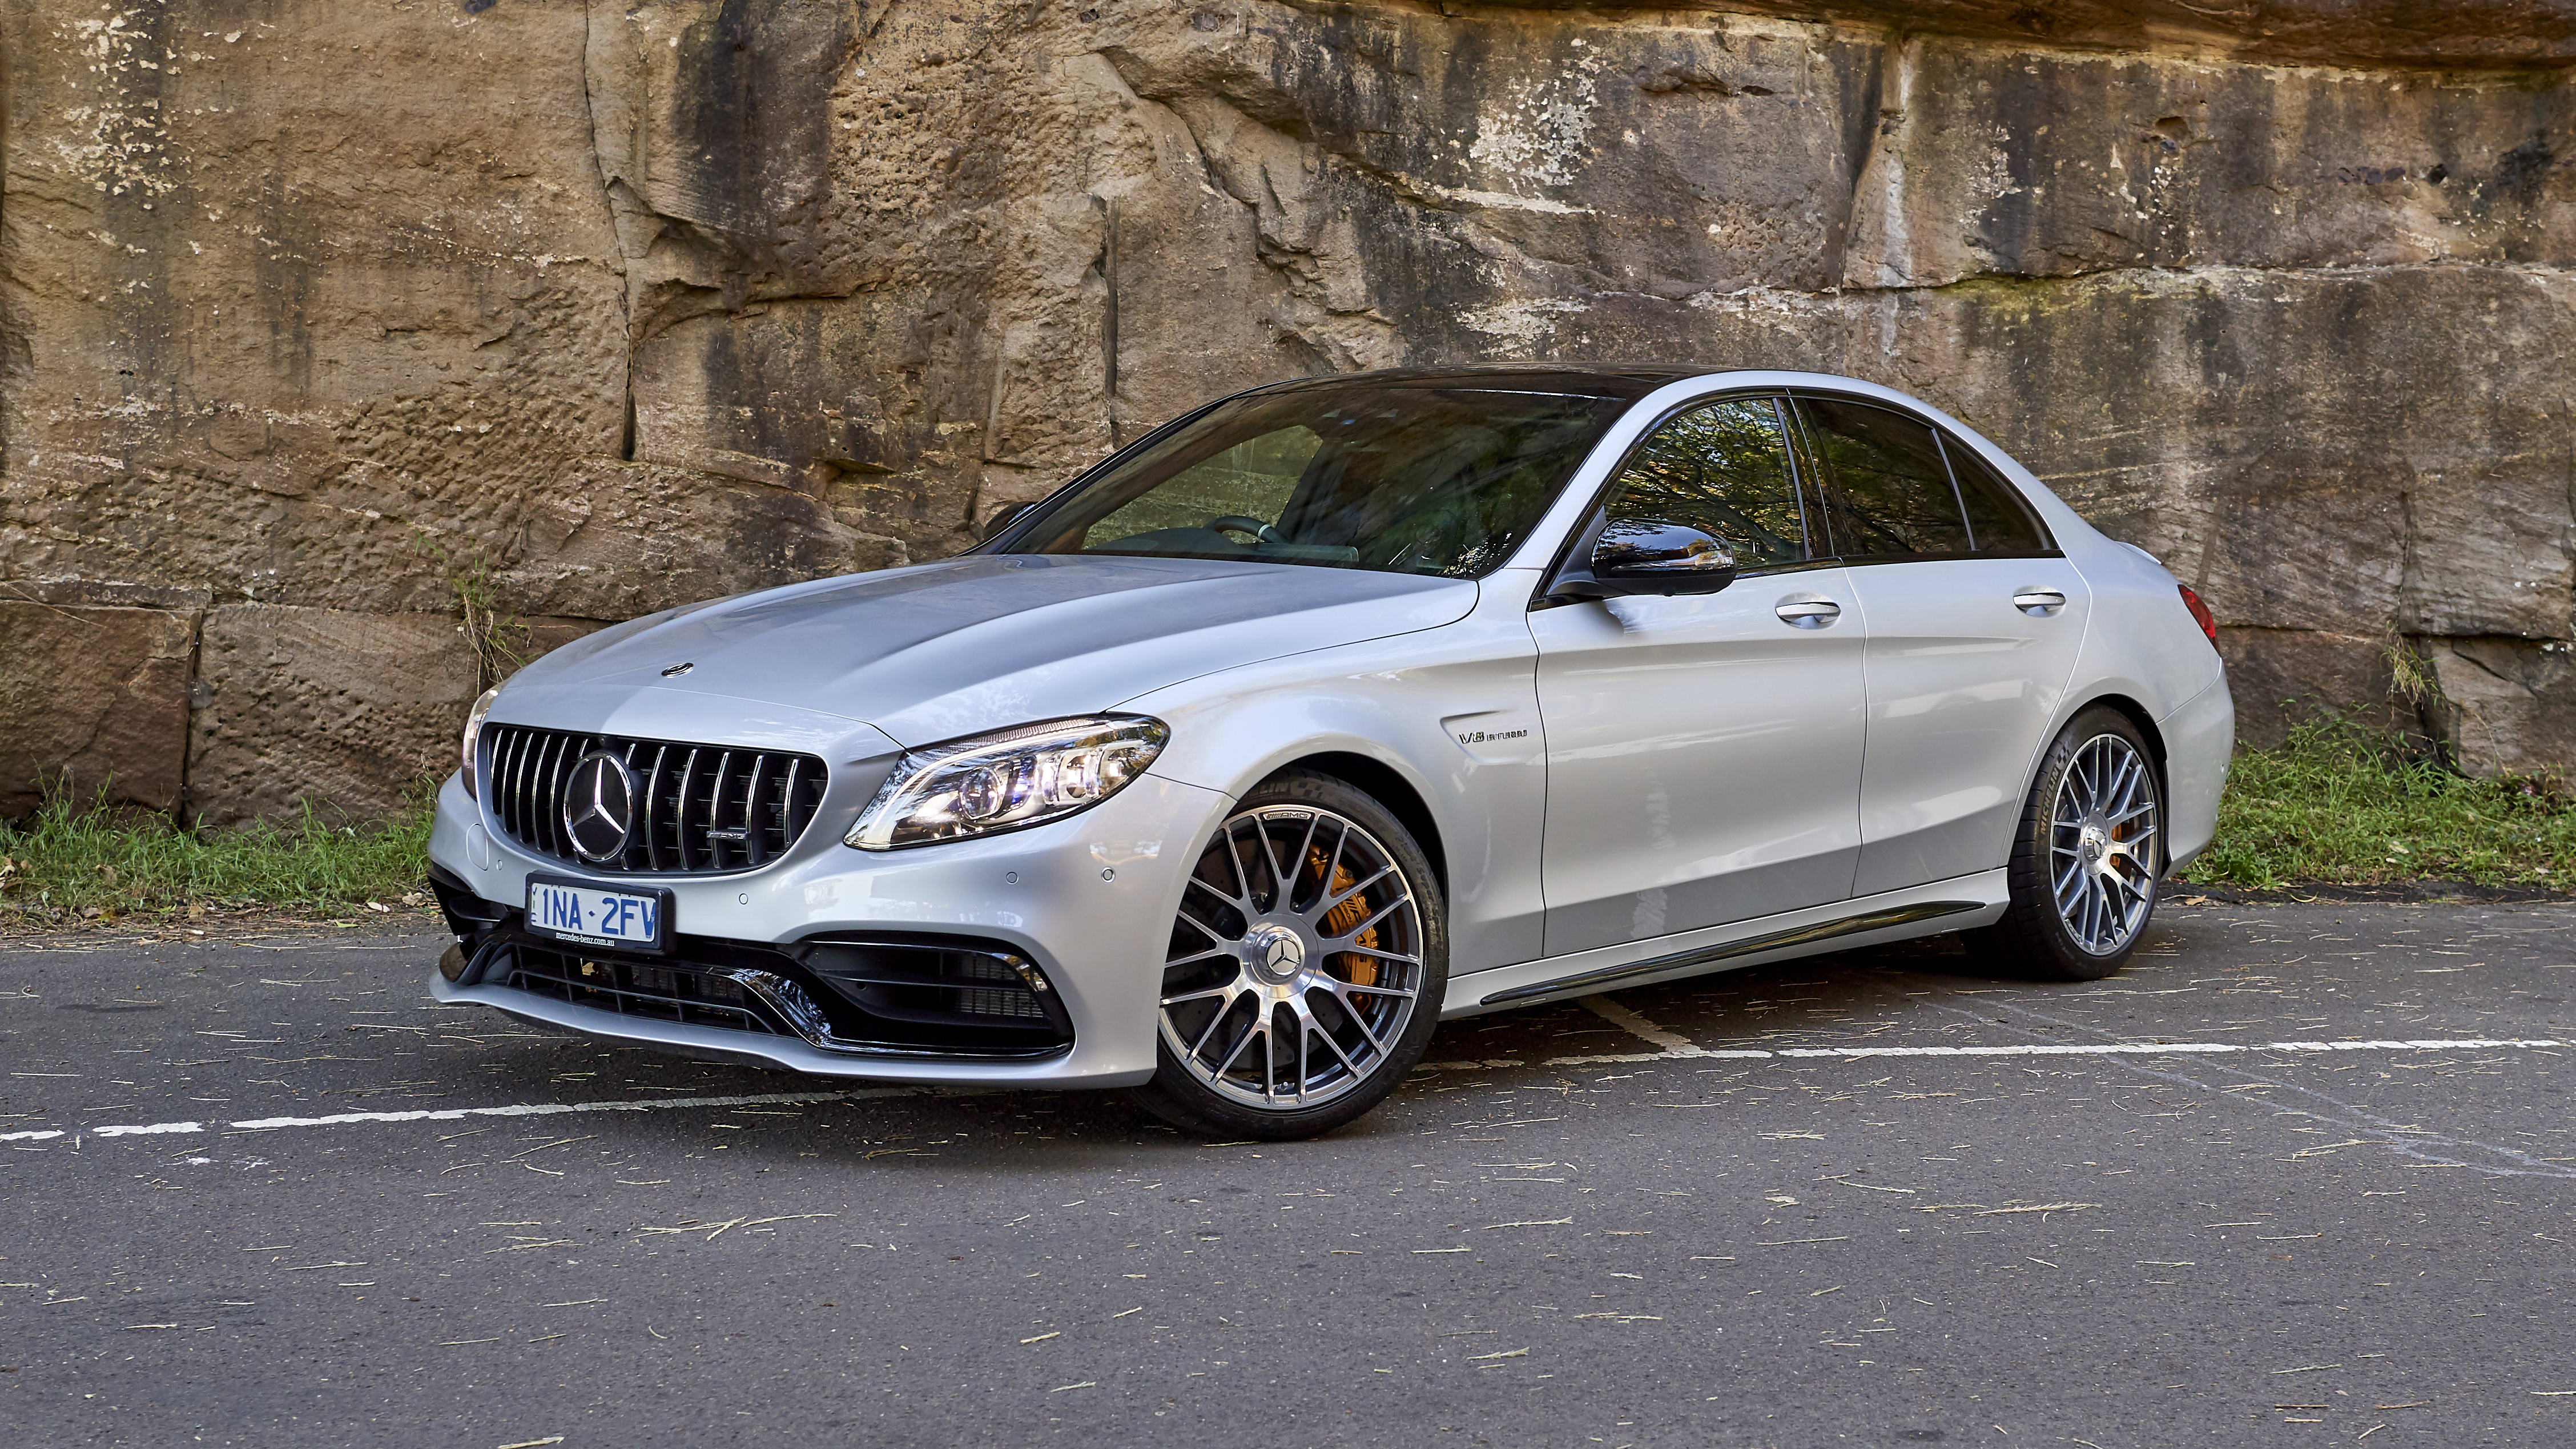 2018 2020 Mercedes Amg C63 S Gt63 S And Glc63 Recalled For Stability Fault Caradvice